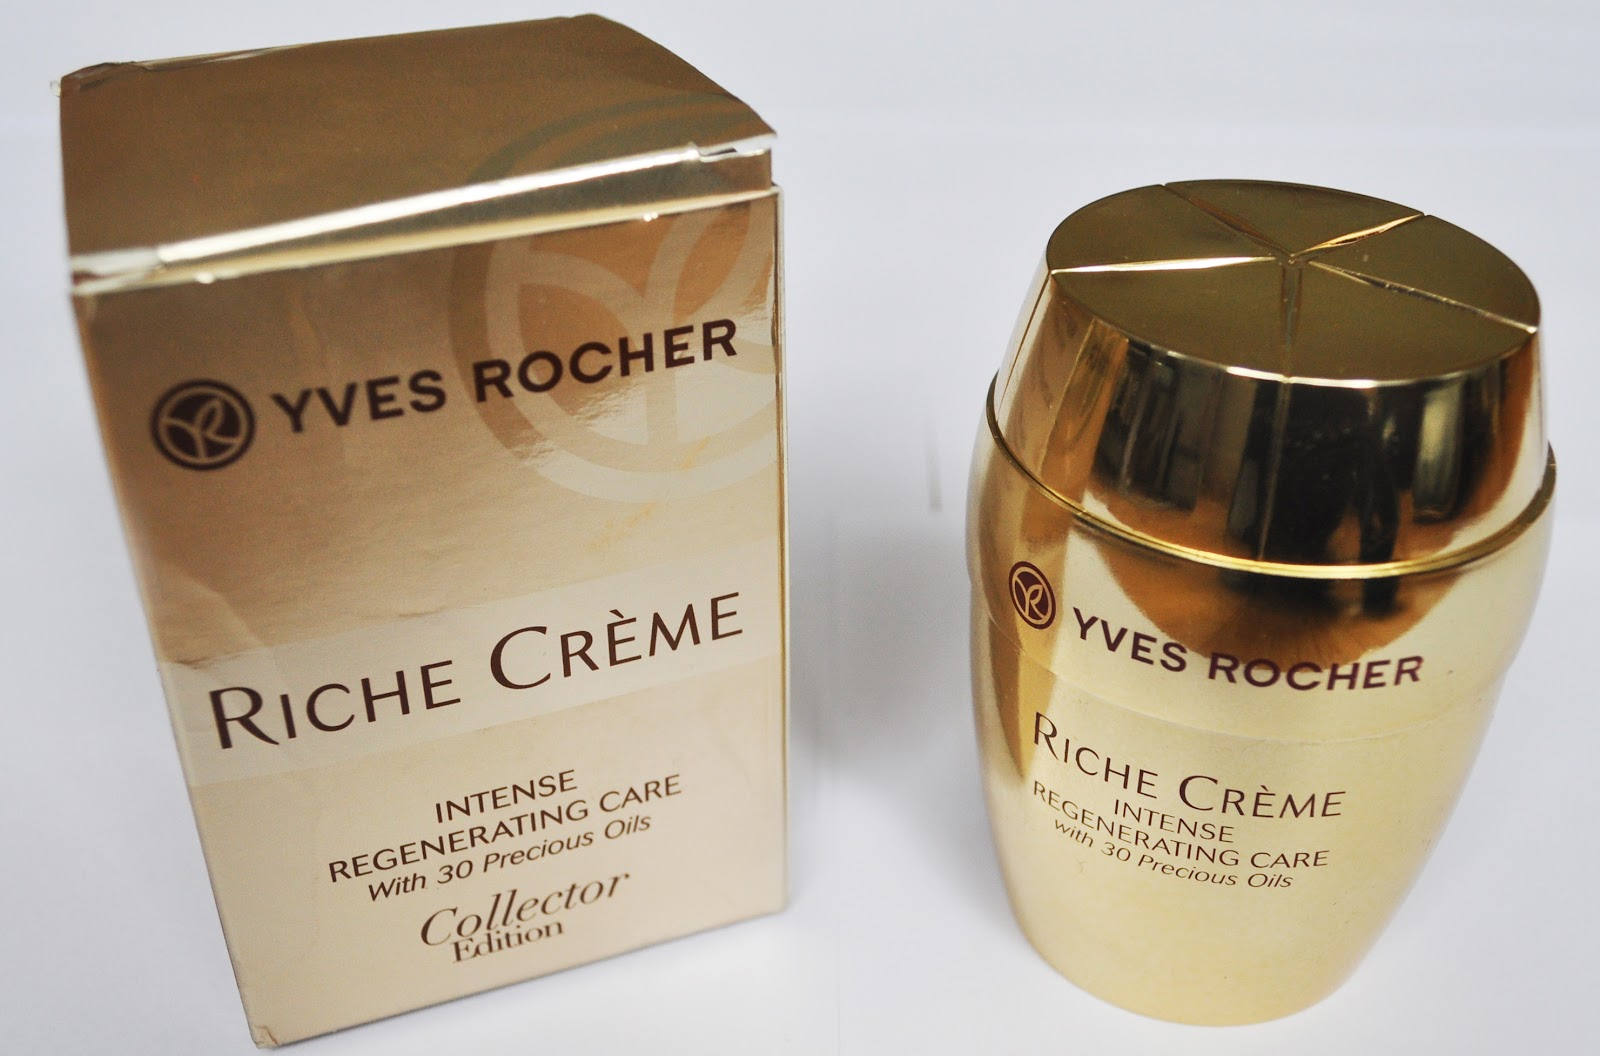 francescassandra uk fashion beauty and lifestyle blog review yves rocher riche creme. Black Bedroom Furniture Sets. Home Design Ideas